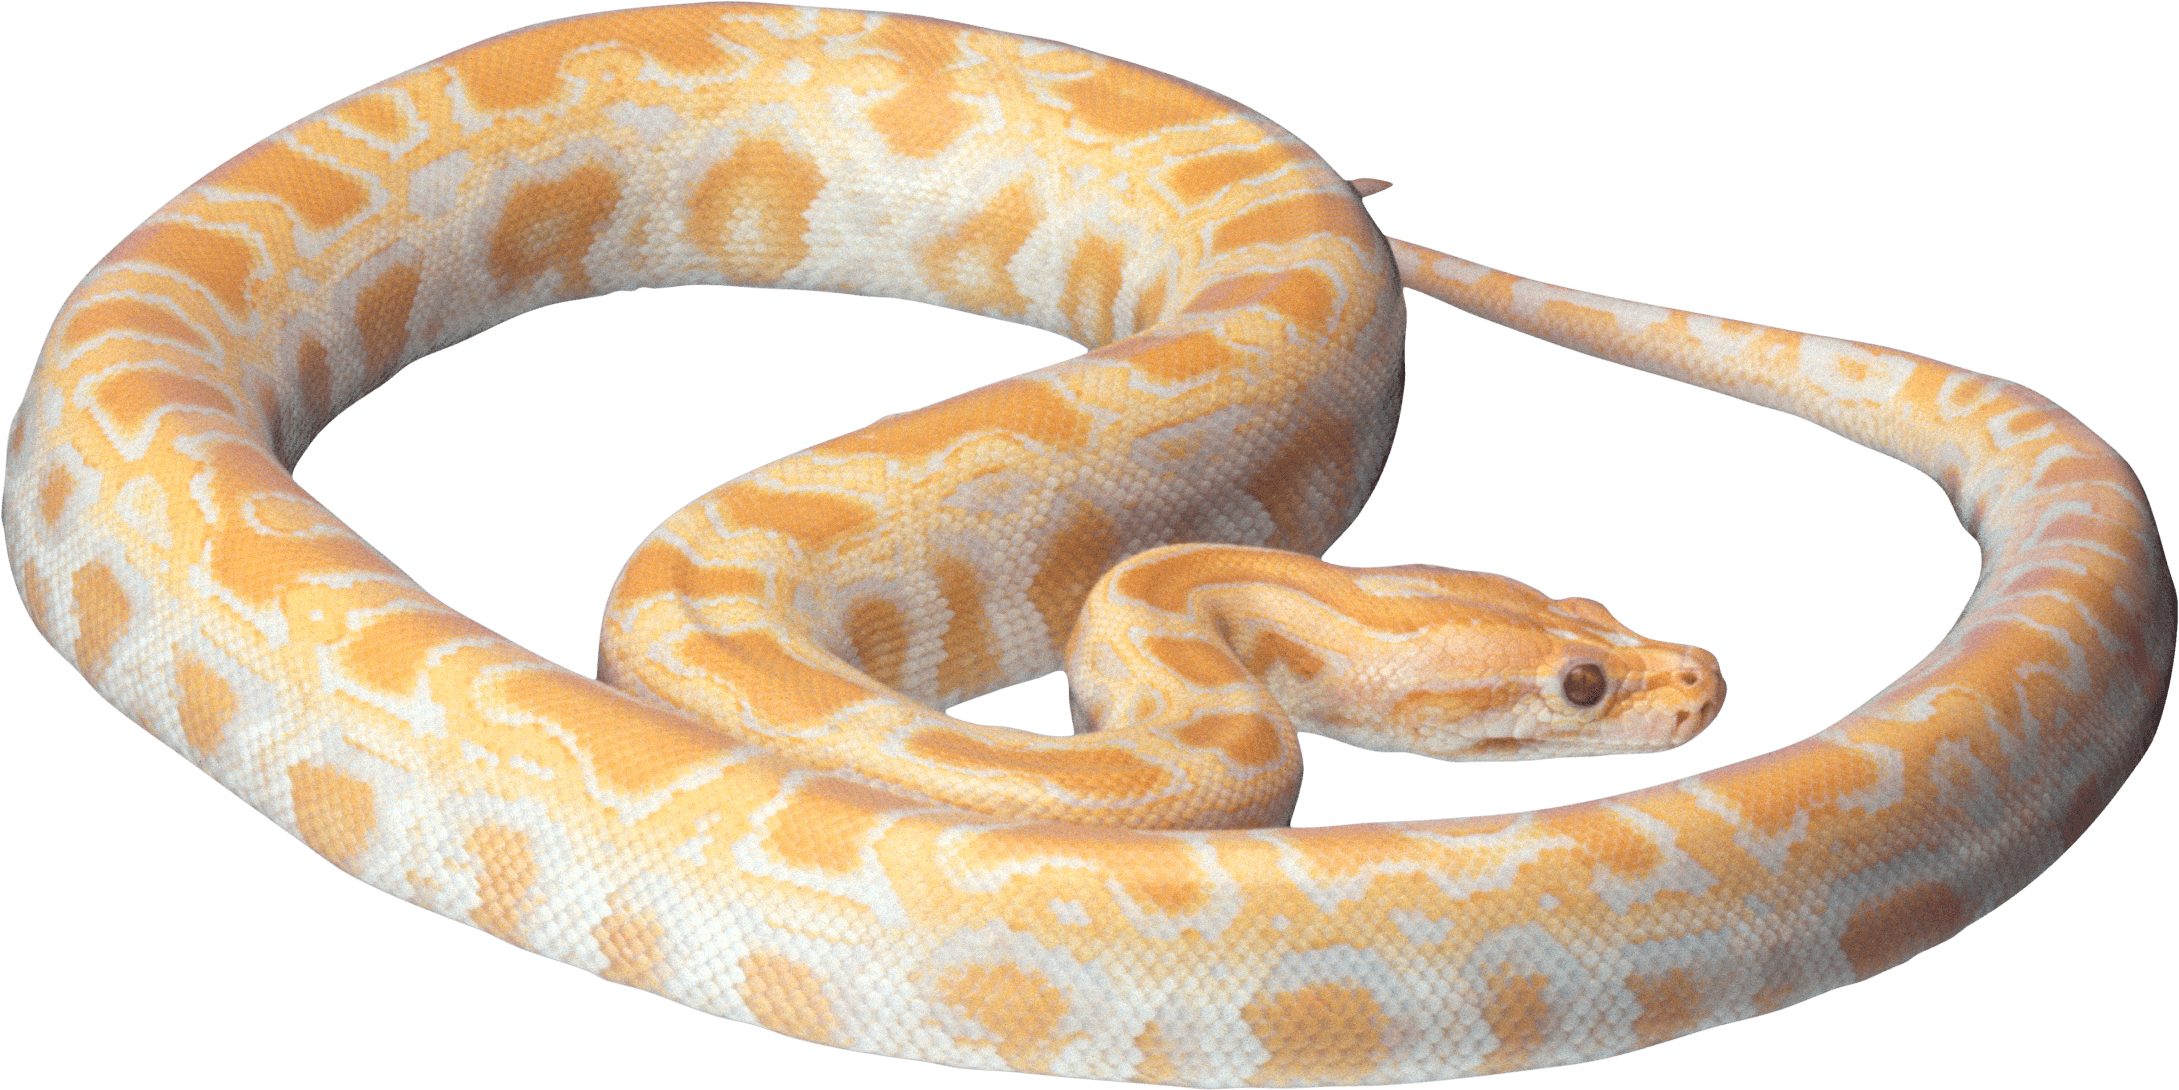 Png image purepng free. Snake clipart sea snake